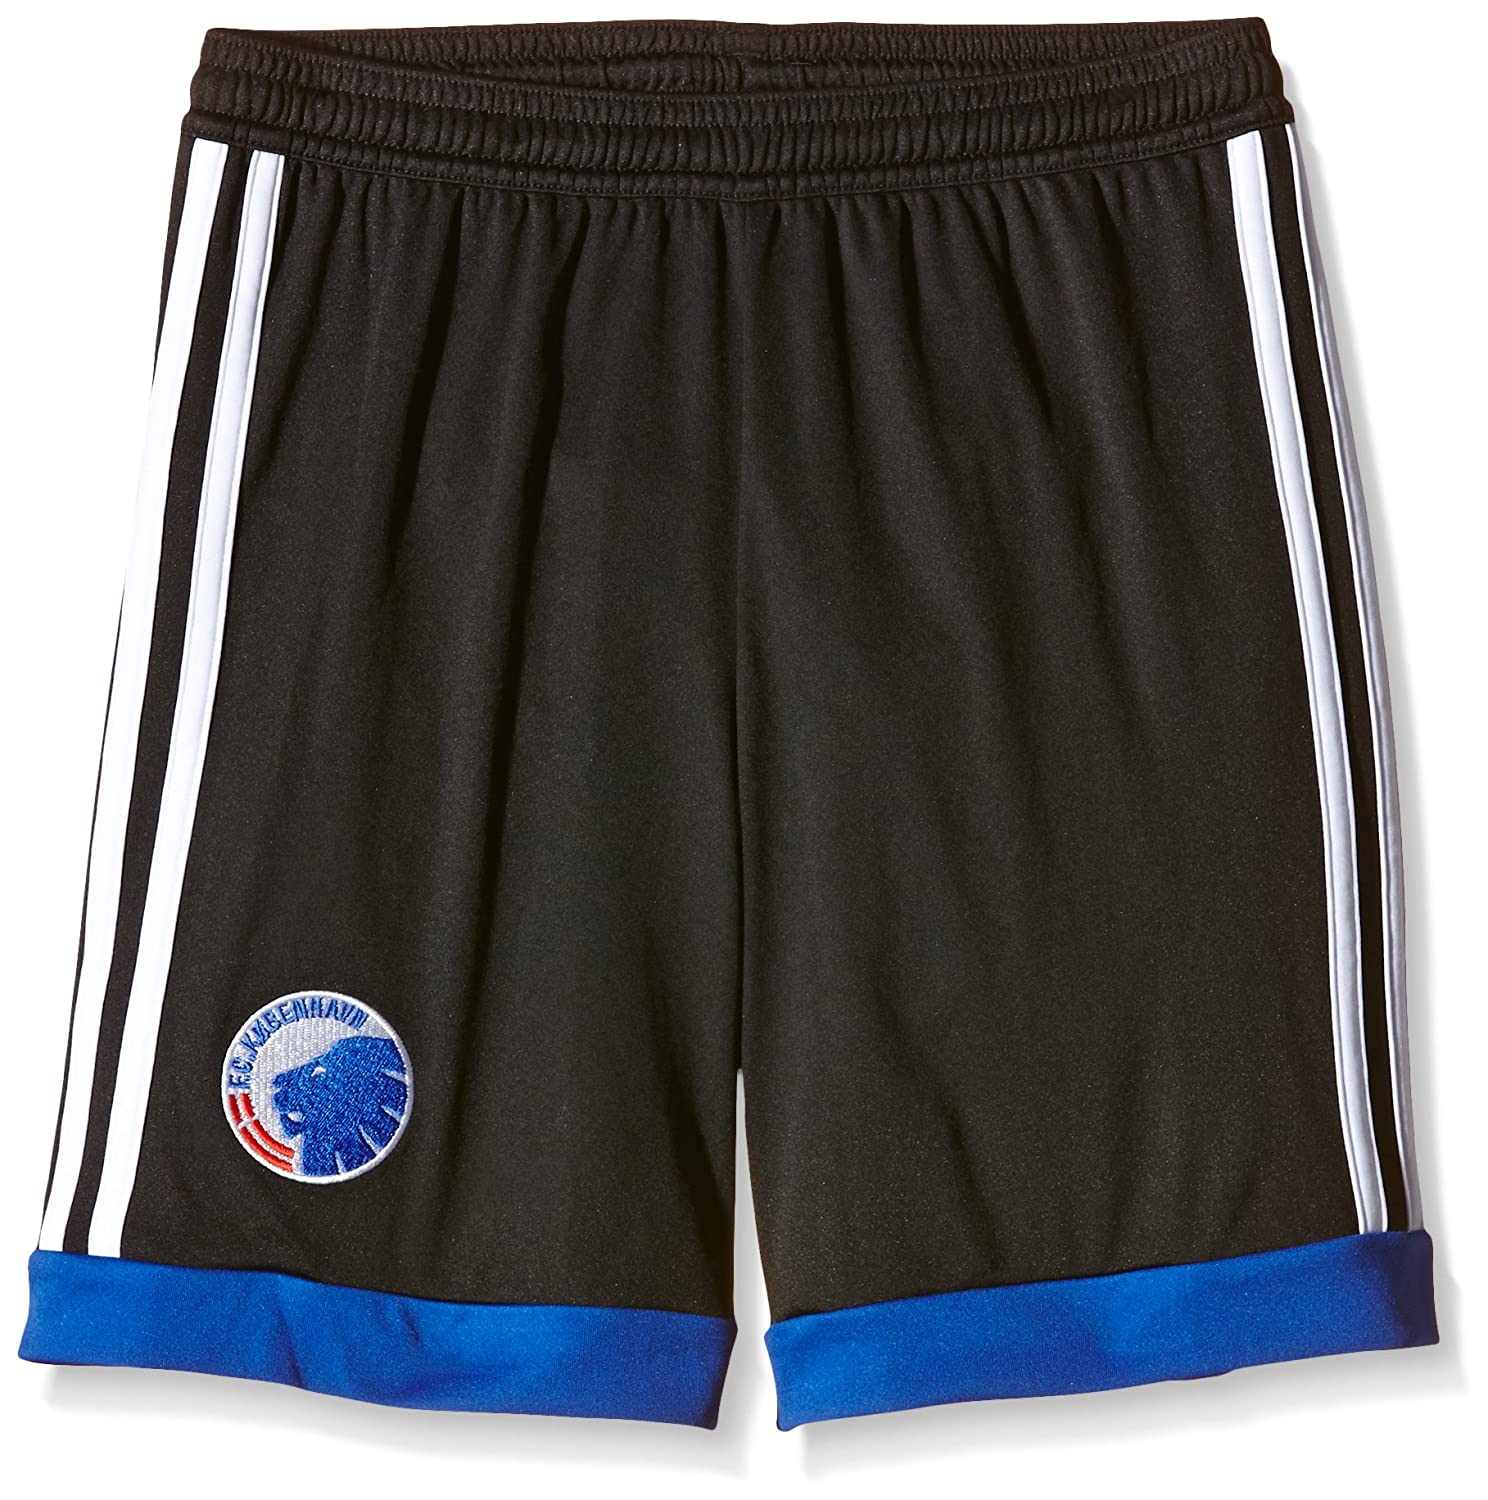 Adidas Performance FC Copenhagen Juniors Boys Away Football Shorts - Black 9-10Y AC5473